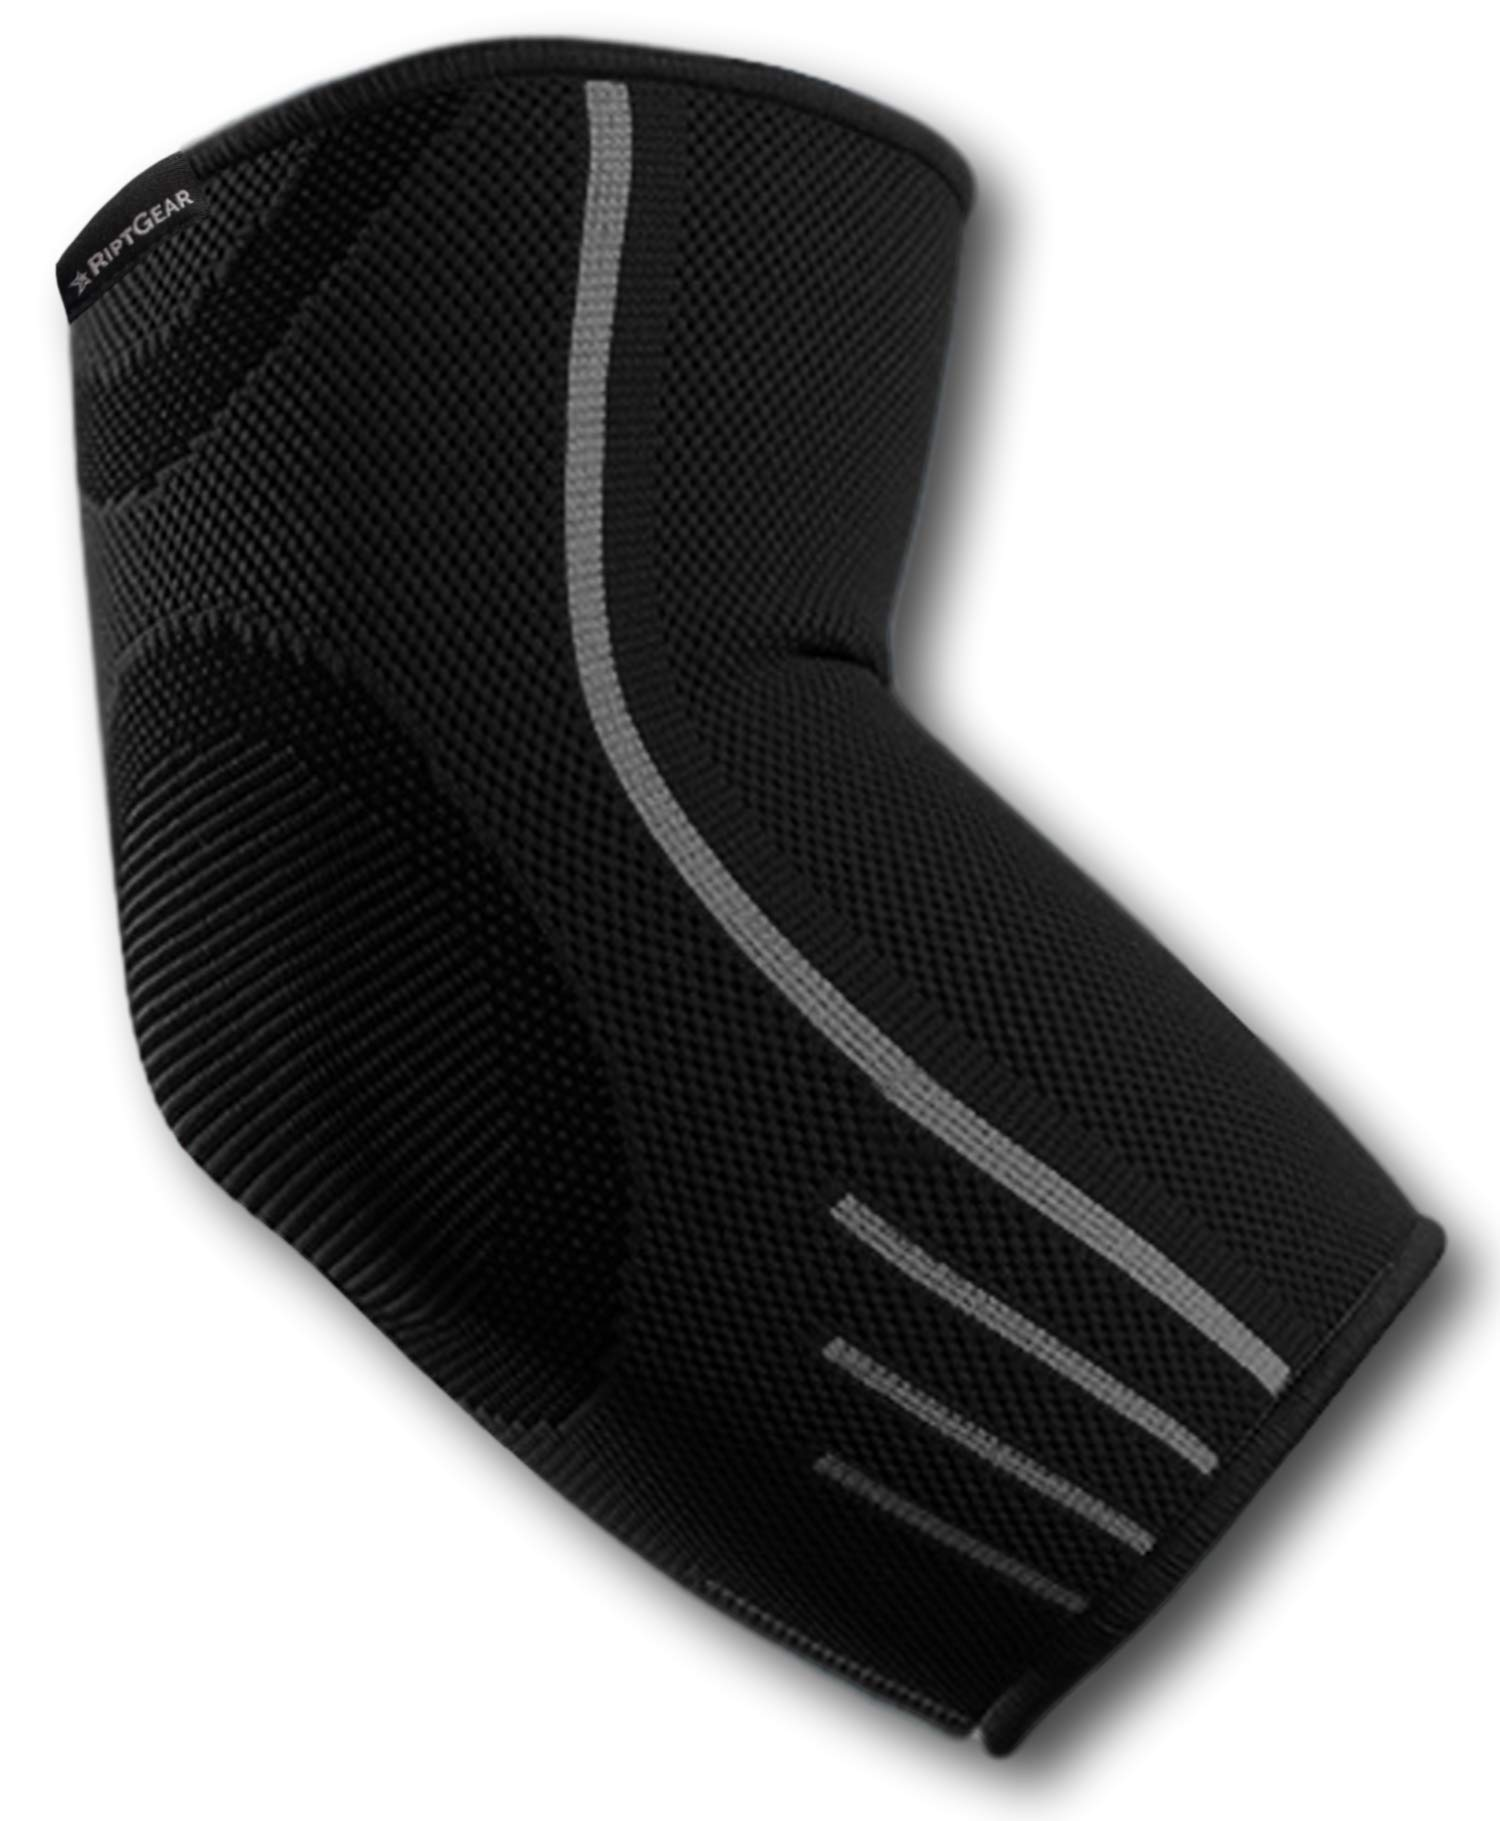 RiptGear Elbow Brace Compression Sleeve for Men and Women - Arm Support for Tendonitis, Arthritis, and Bursitis - Elbow Brace for Golfers Elbow, Tennis Elbow, Weightlifting, Sports (Large) by RiptGear